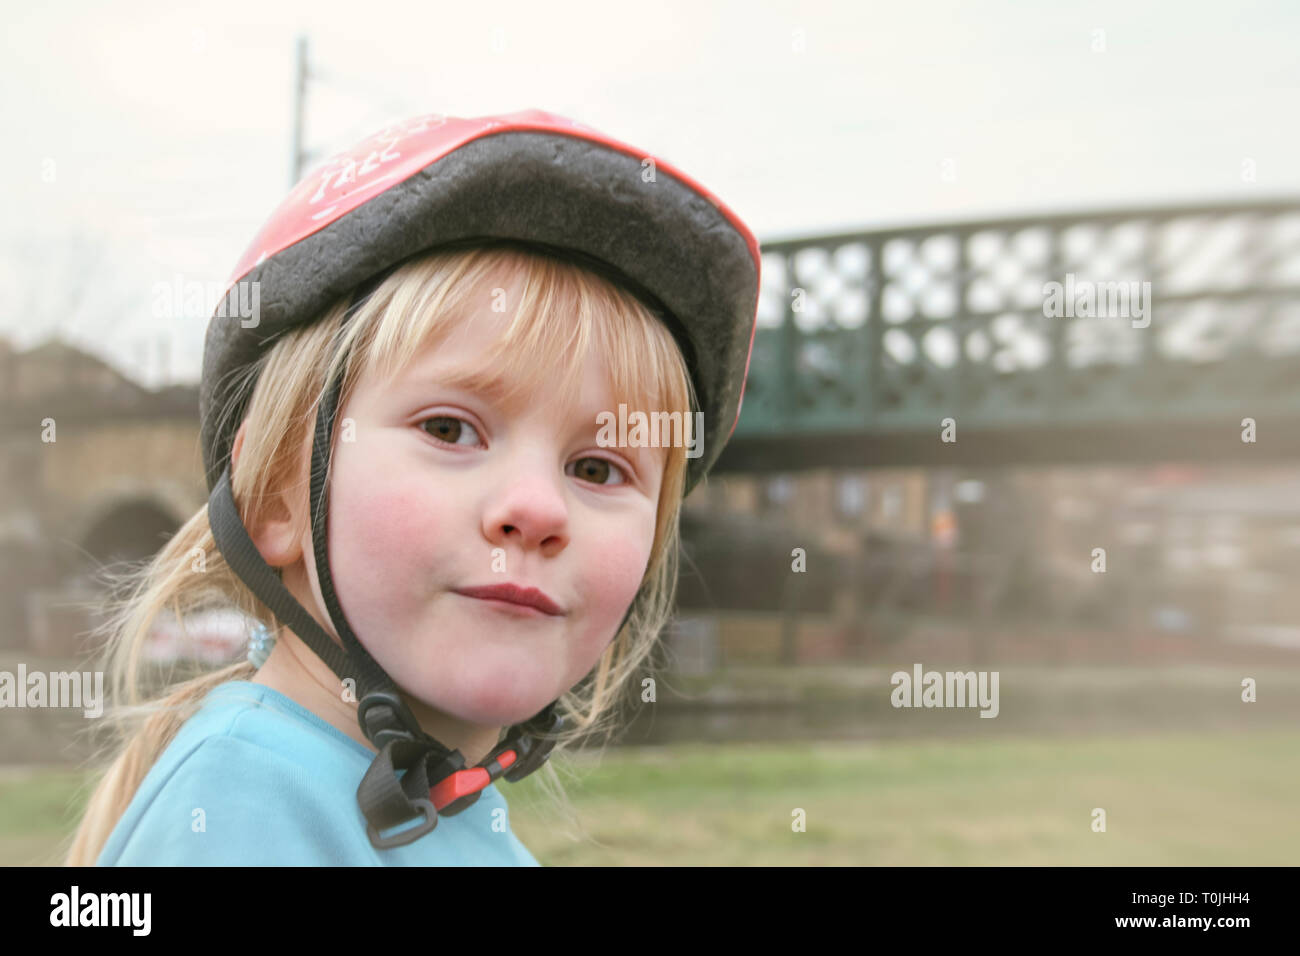 Close-up portrait of cute 6-year old girl wearing a cycling helmet, looking at camera - Stock Image